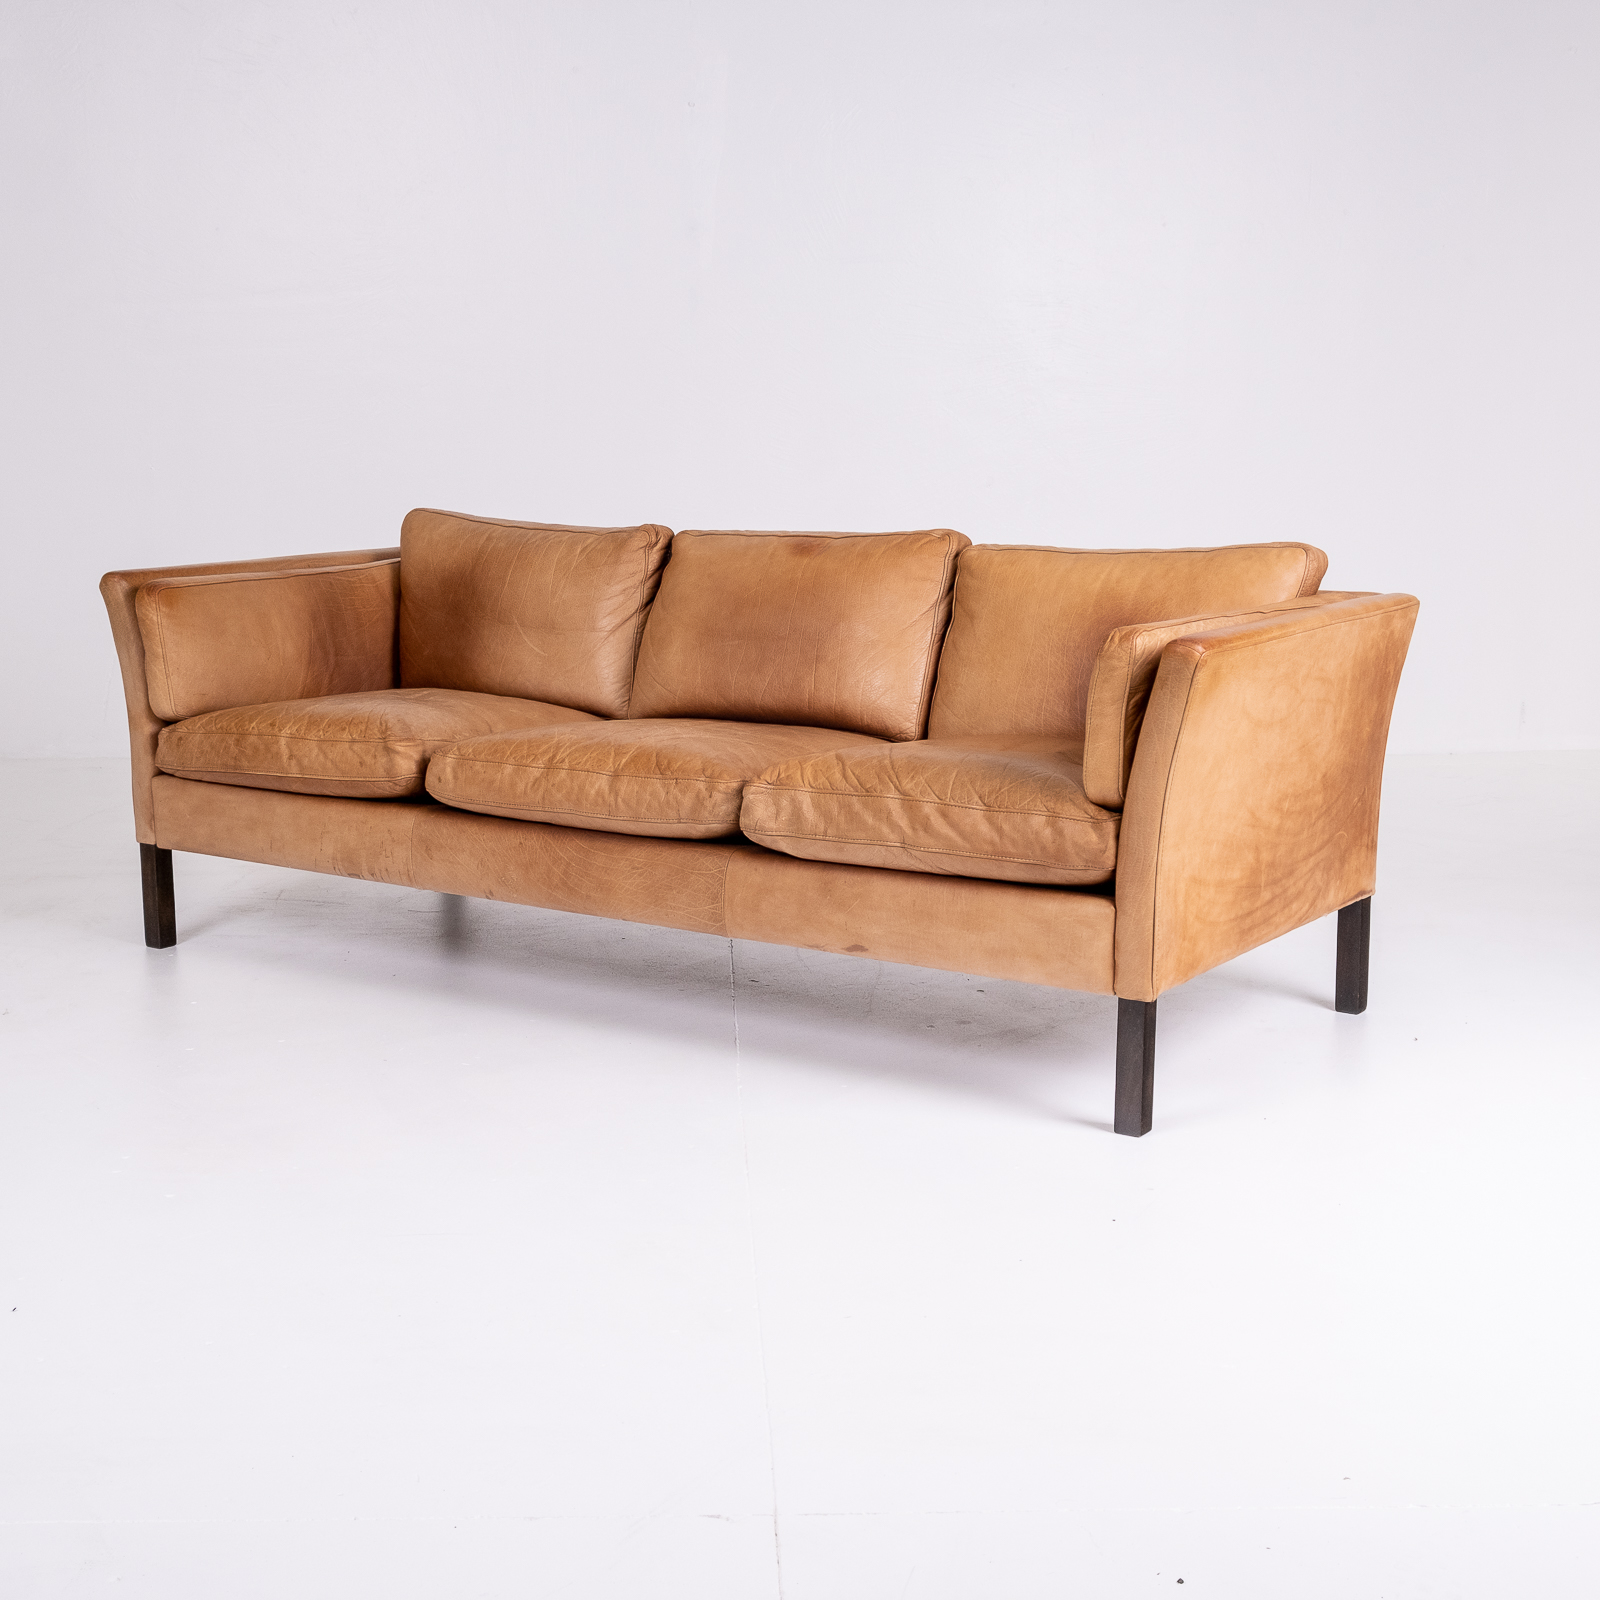 3 Seat Sofa By Stouby In Light Tan Leather, 1960s, Denmark 02